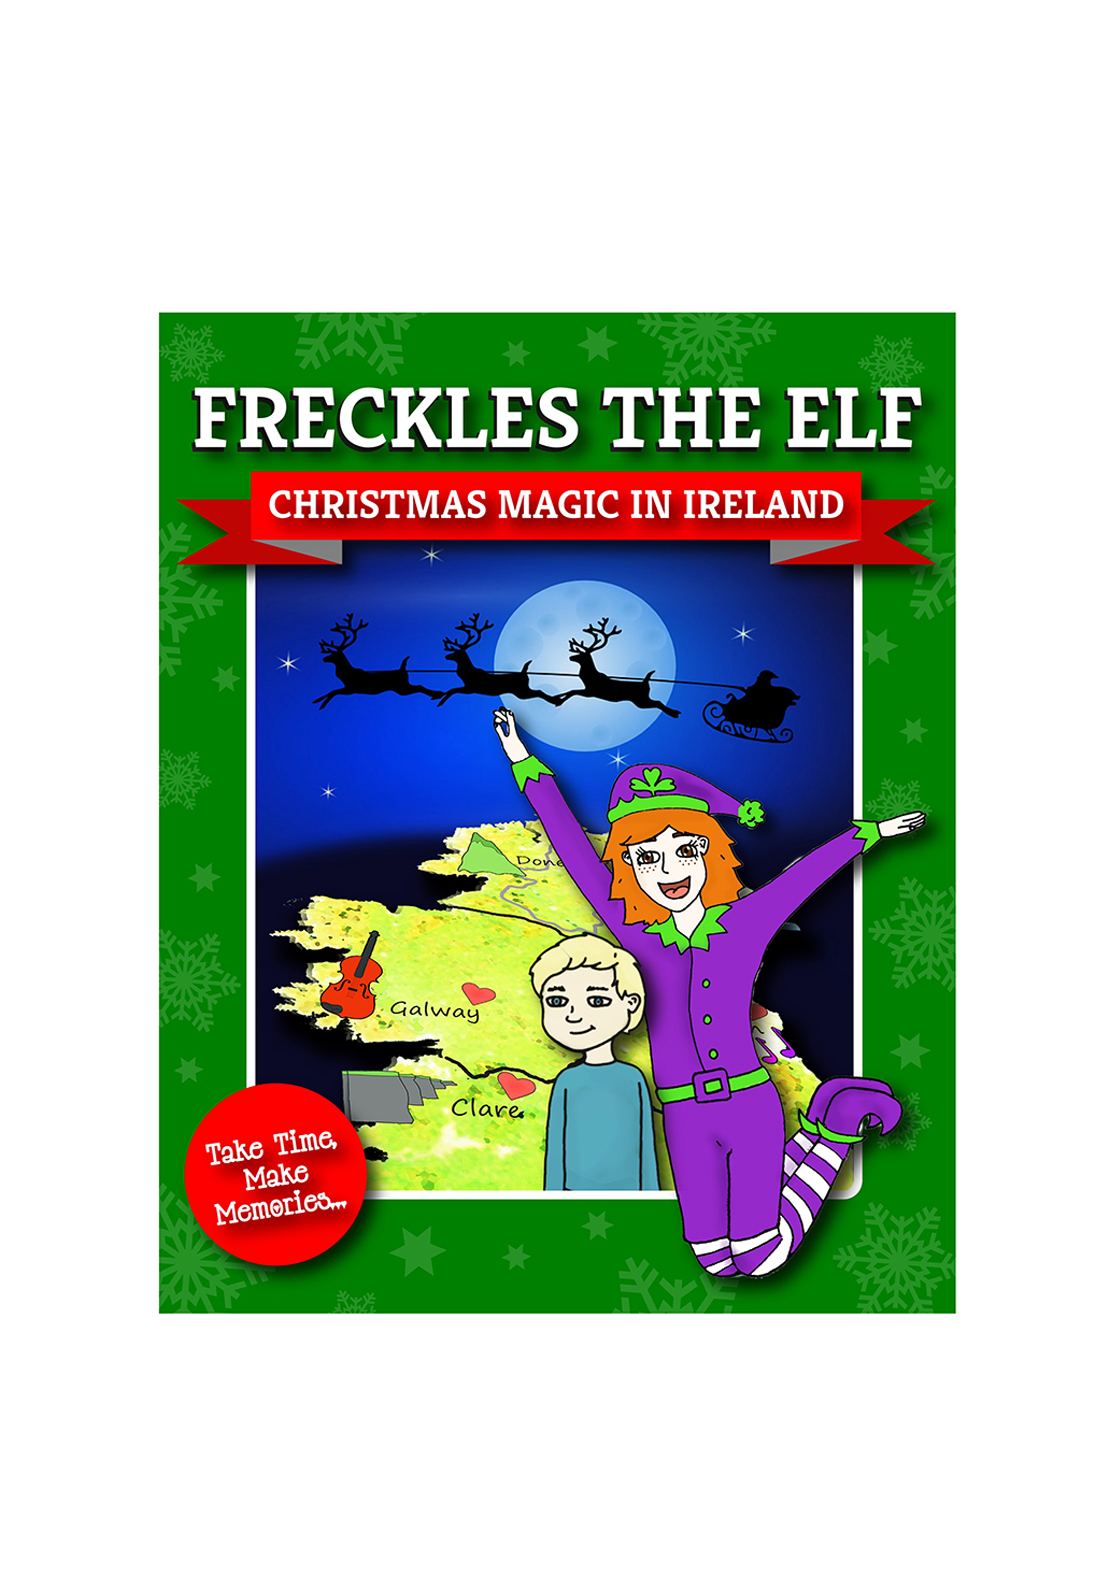 Freckles The Elf Magic Christmas Magic In Ireland Story Book